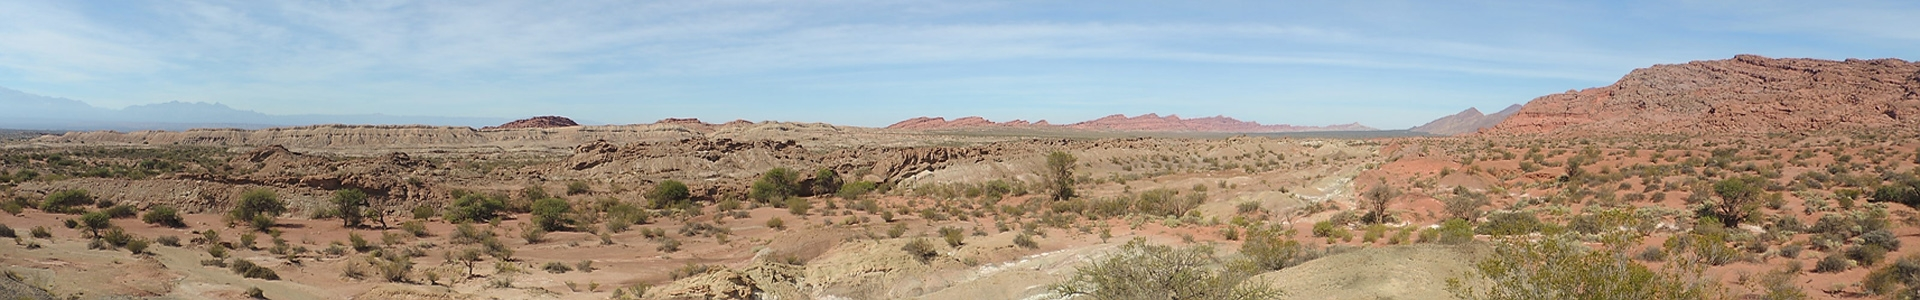 Ischigualasto Formation